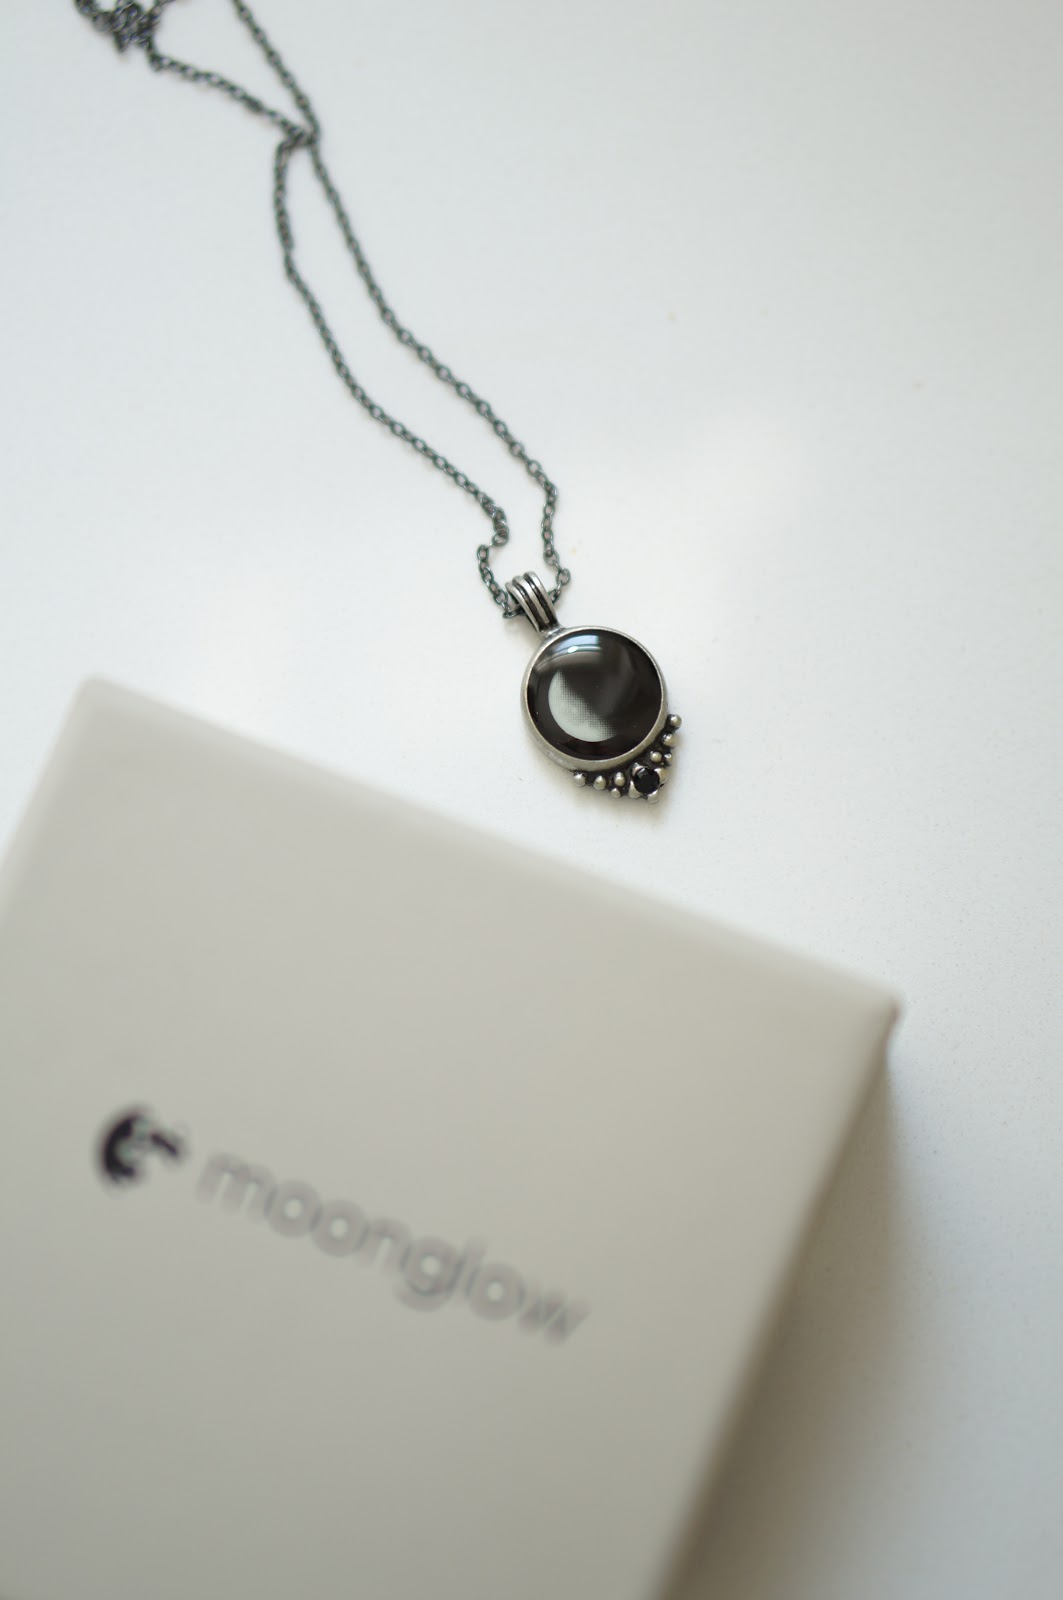 CUSTOM MADE JEWELRY | MOONGLOW NECKLACE - Rebecca Lately